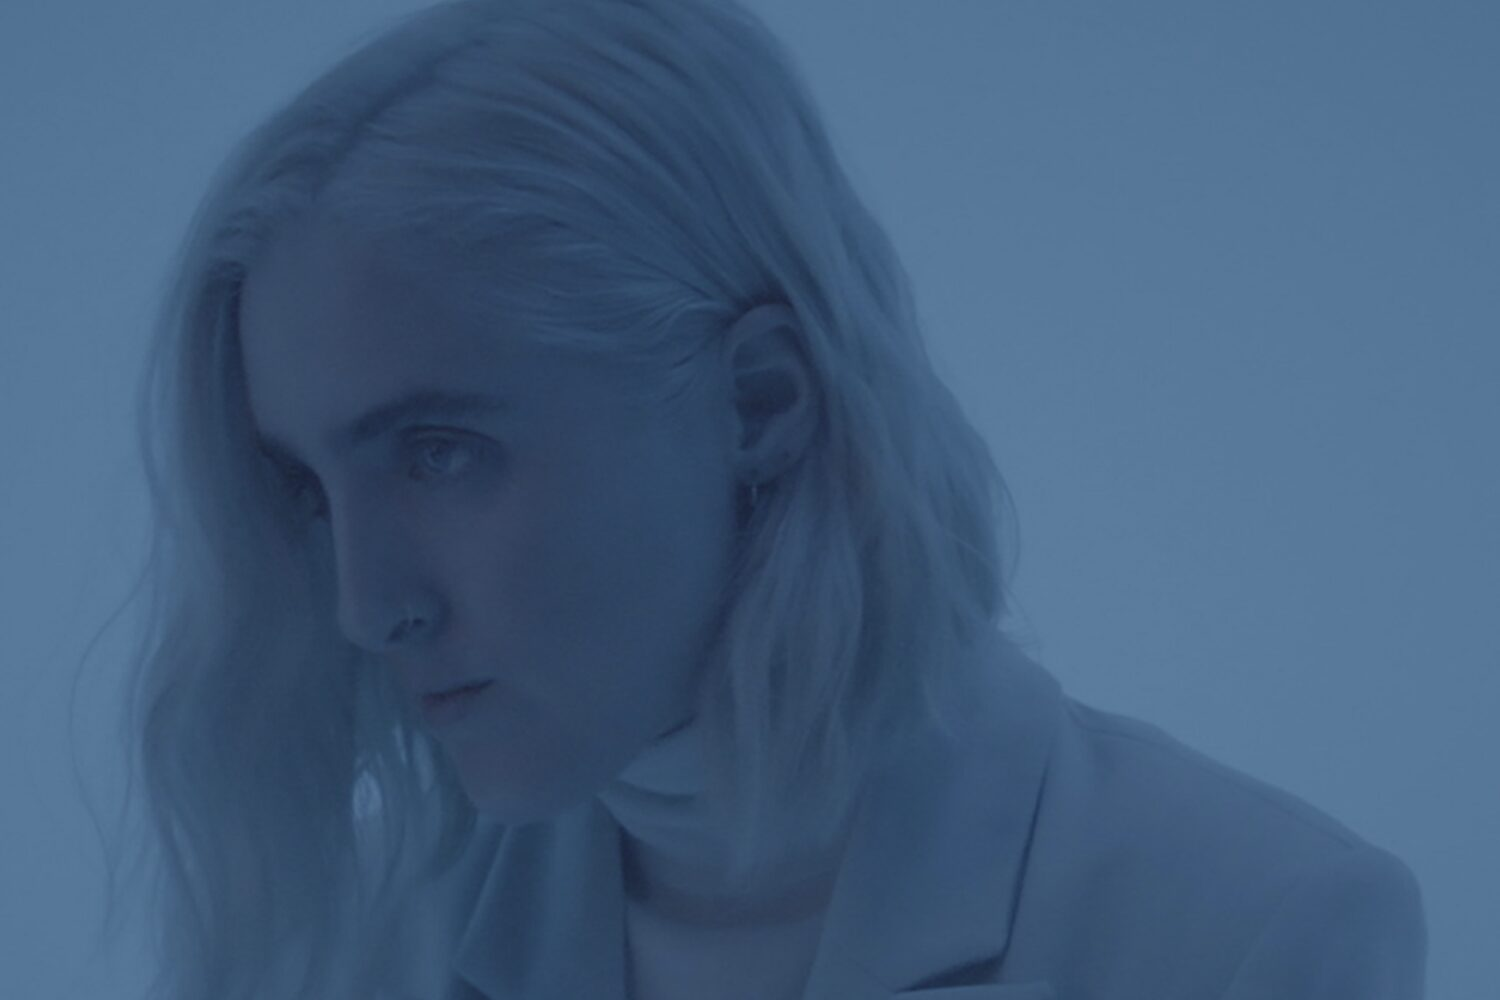 Shura unveils new song 'obsession'